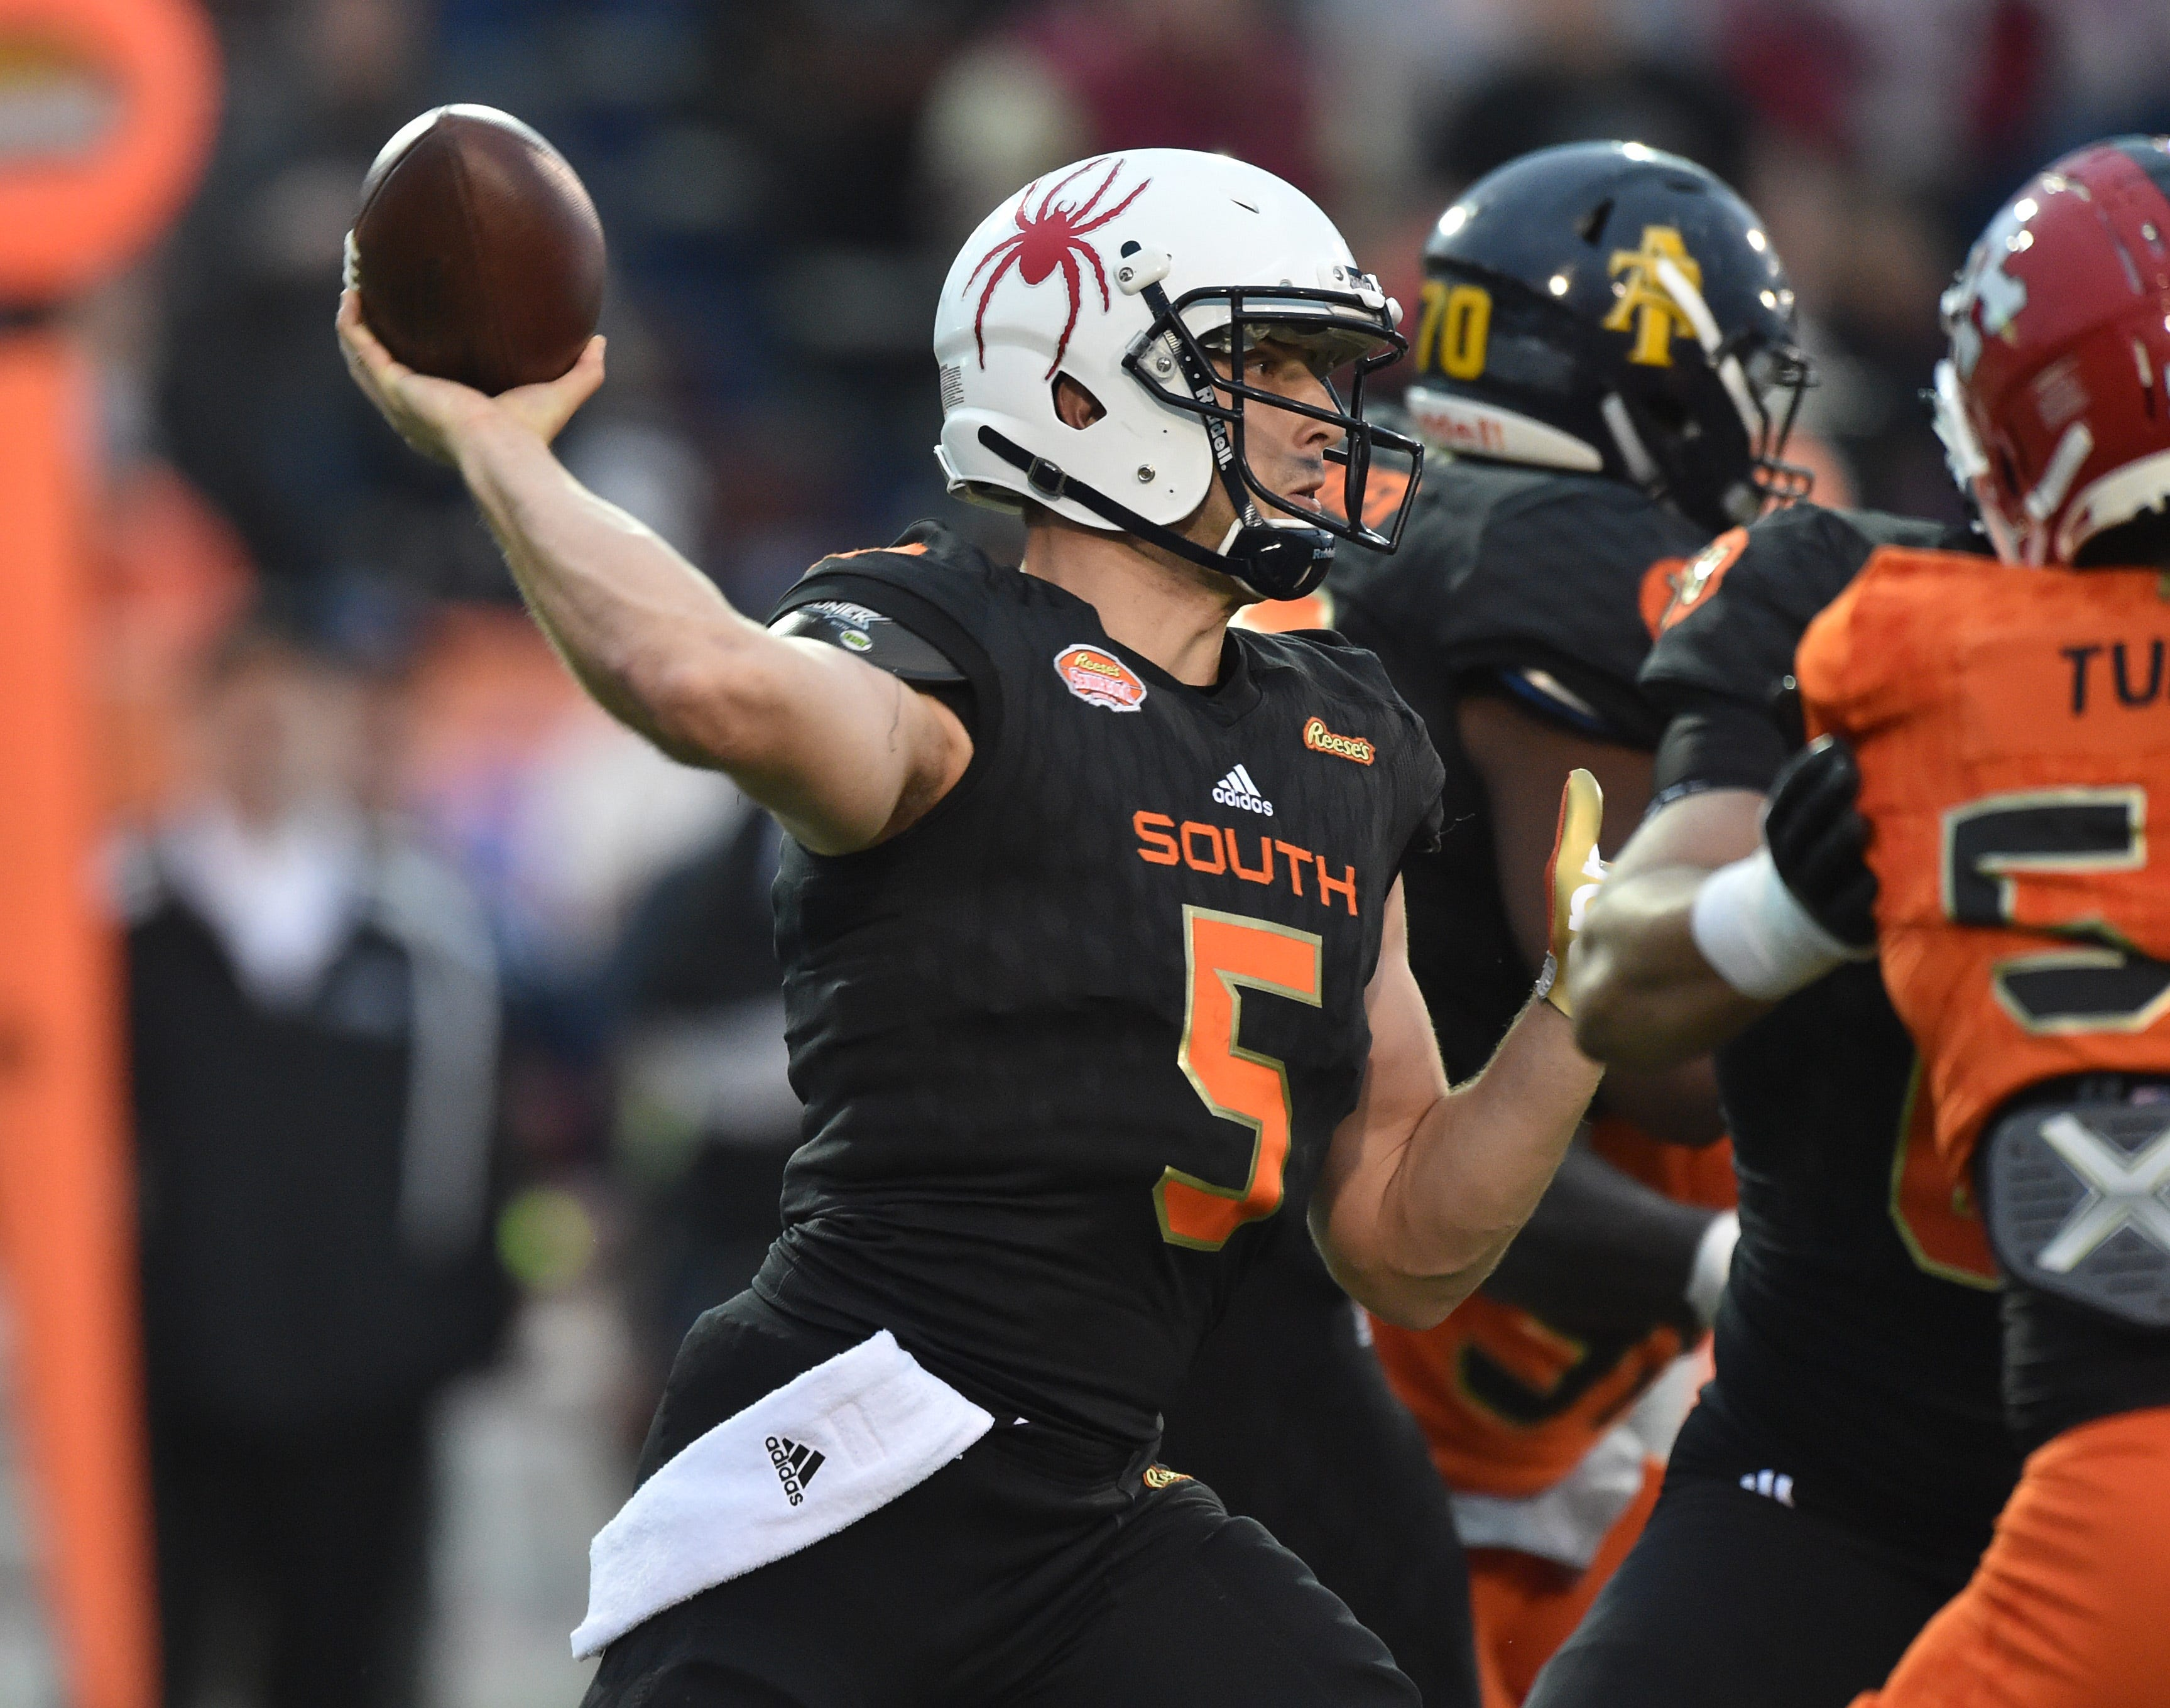 Finding Tom Brady's successor: Patriots have intriguing QB options in 2018 NFL draft